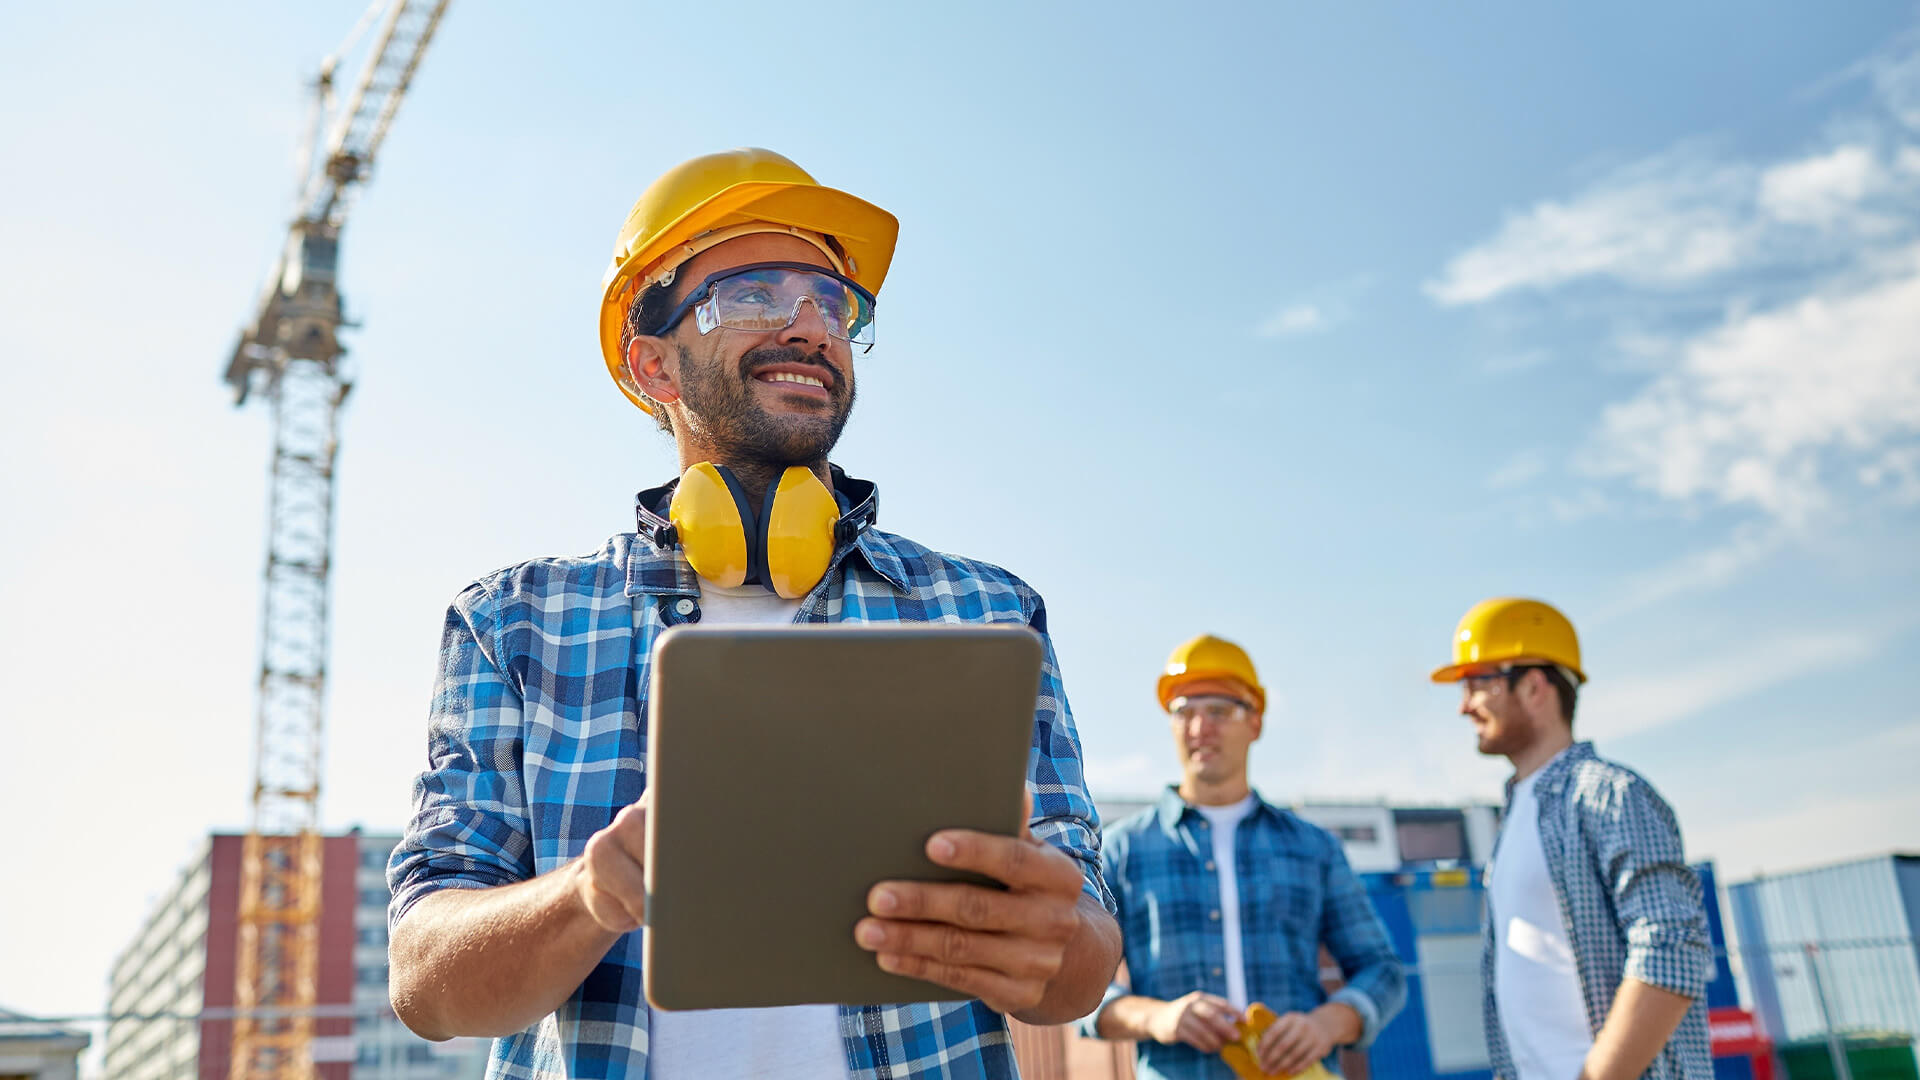 Mananger of a construction site with protective gear and a tablet, smiling